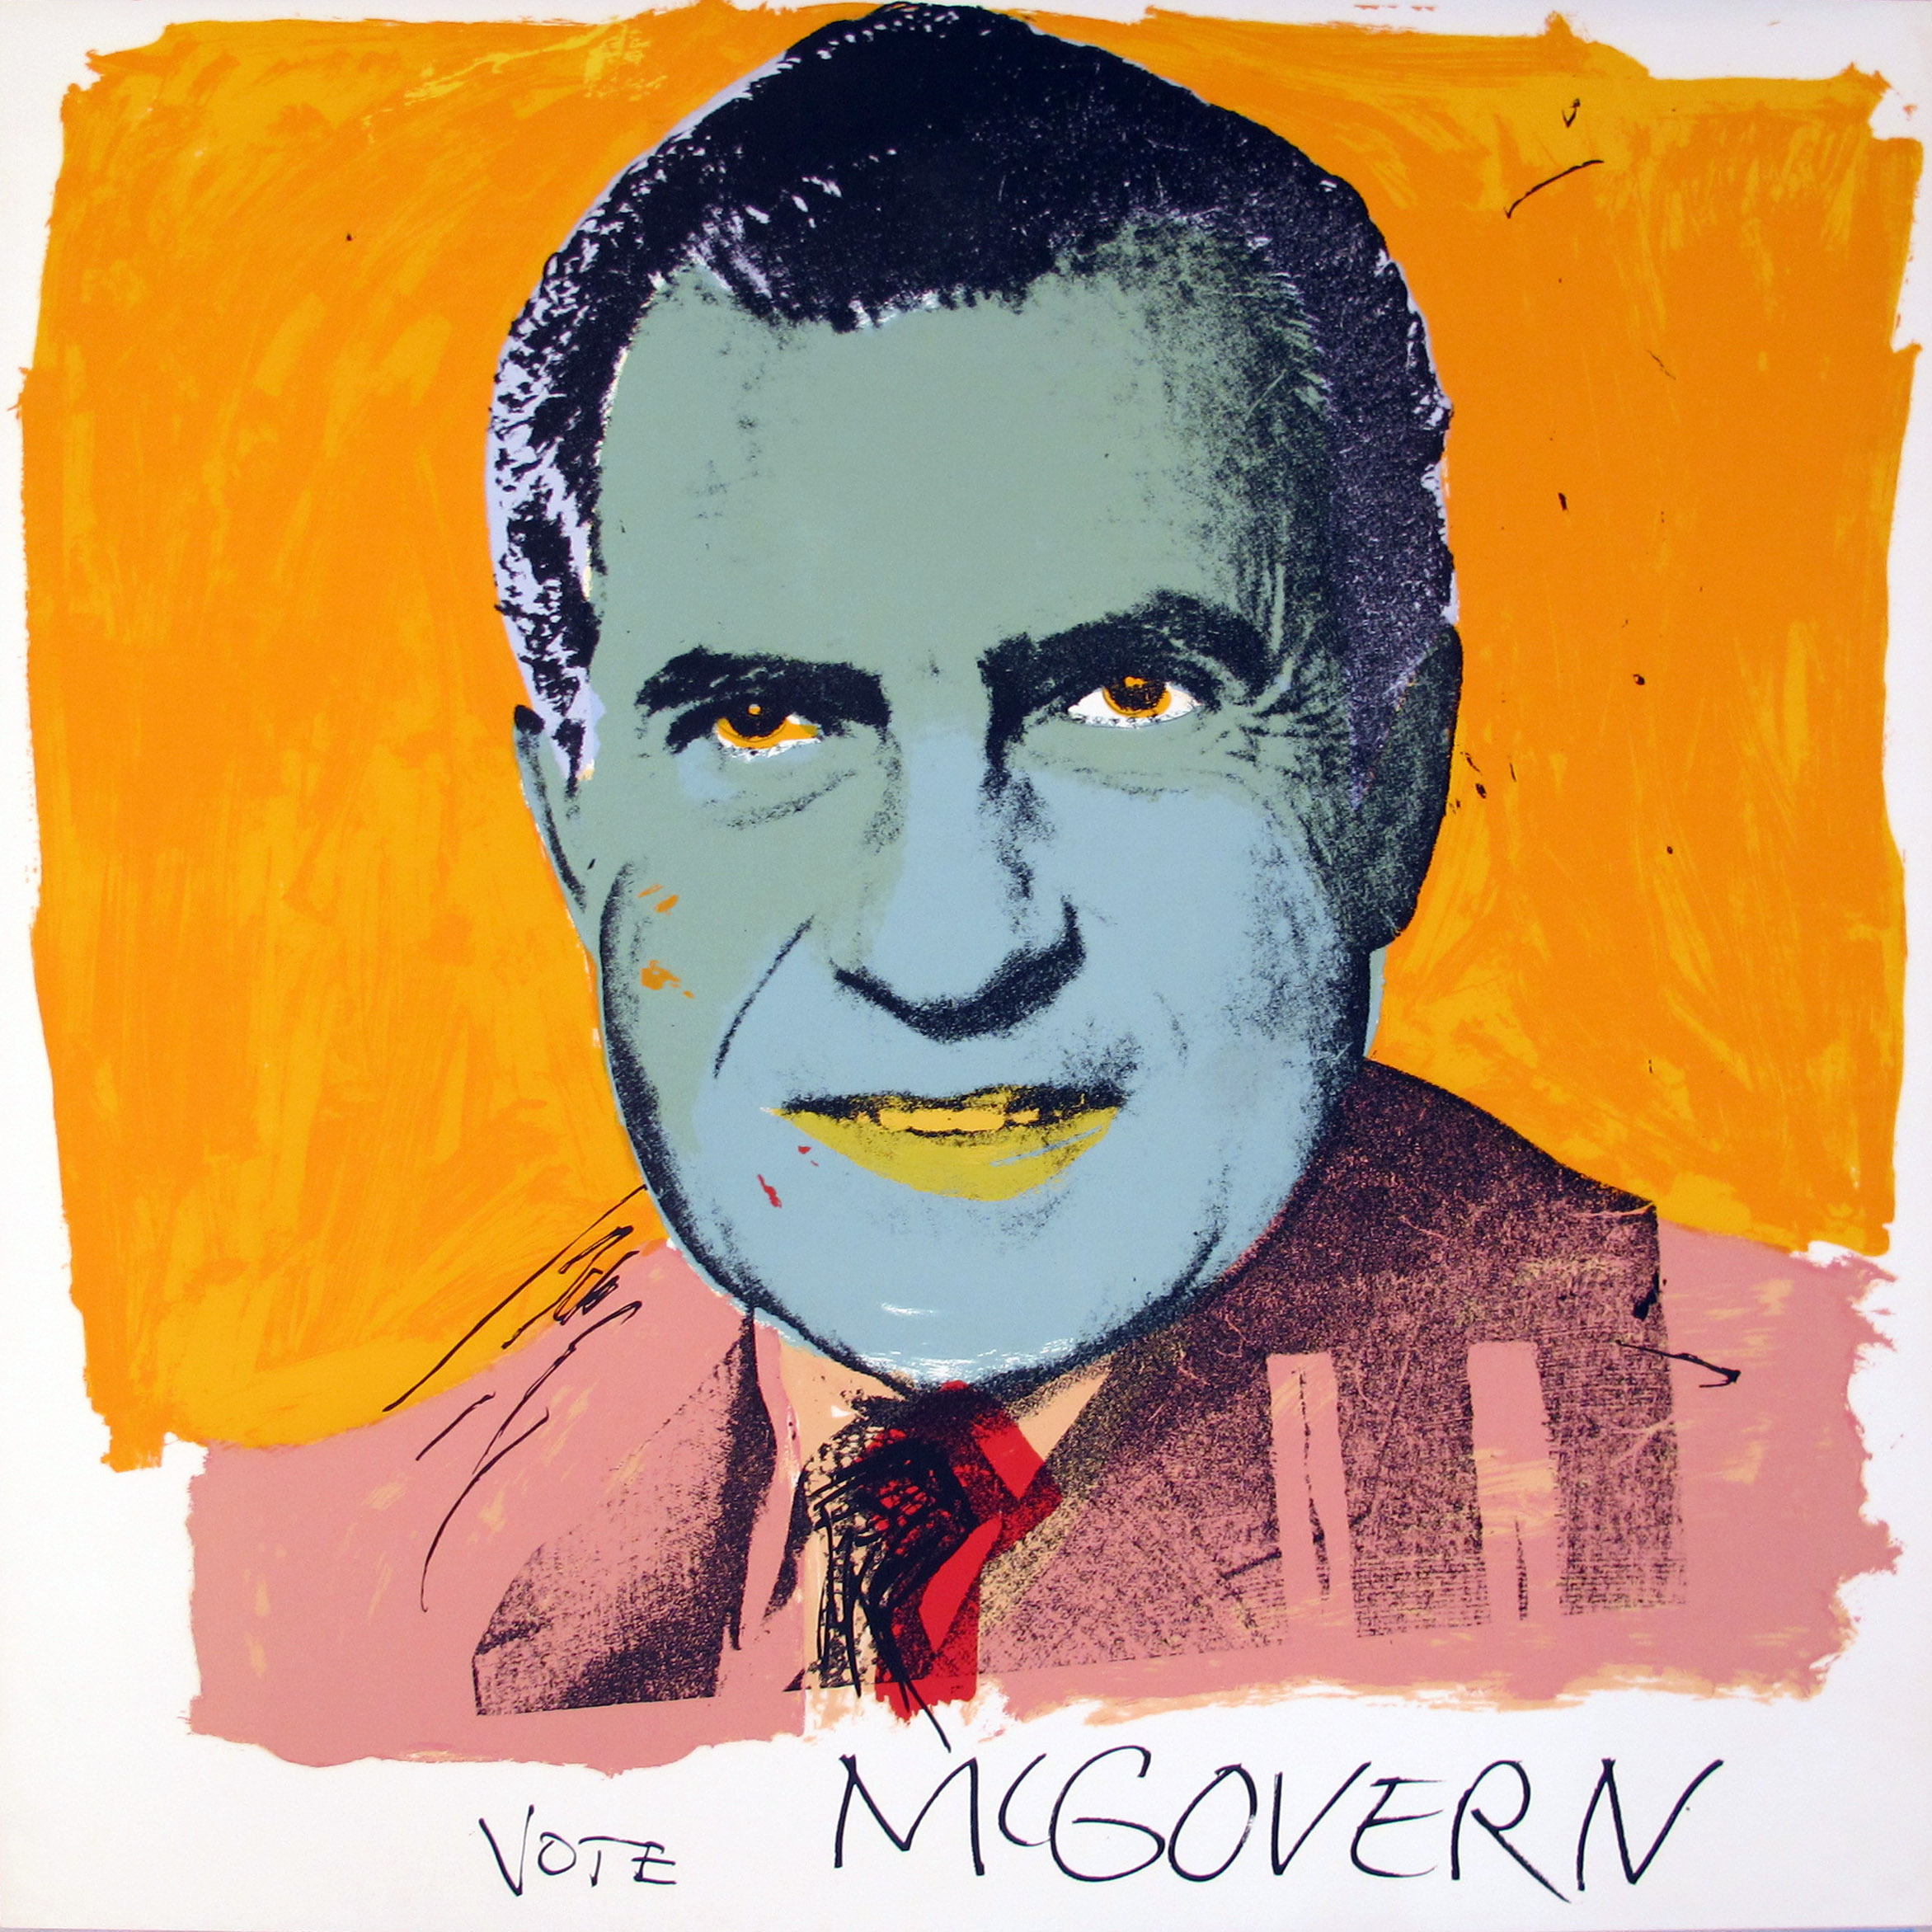 Andy Warhol | Vote McGovern 841 | 1972 | Image of Artists' work.